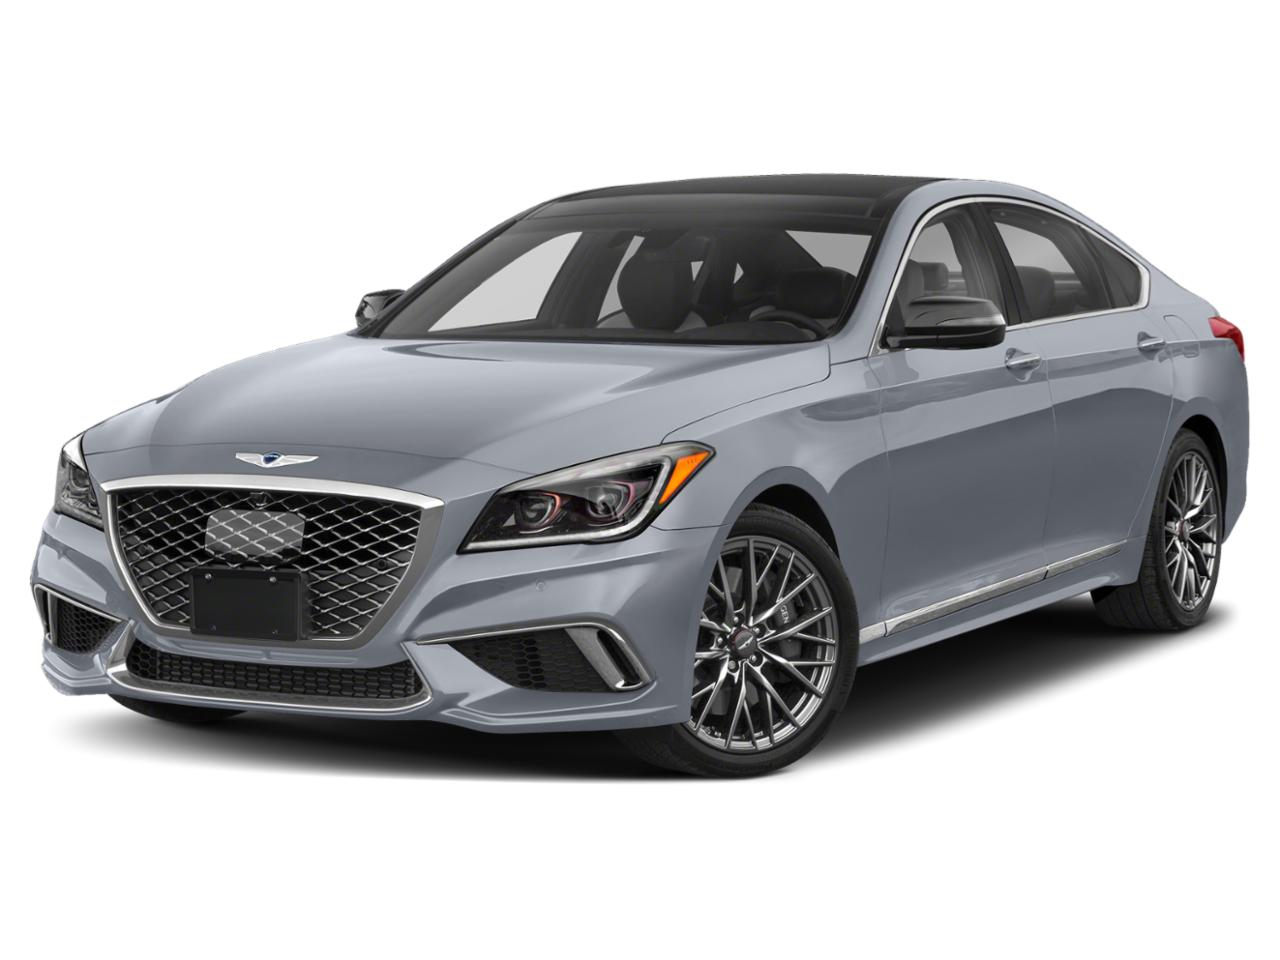 2019 Genesis G80 Vehicle Photo in TALLAHASSEE, FL 32308